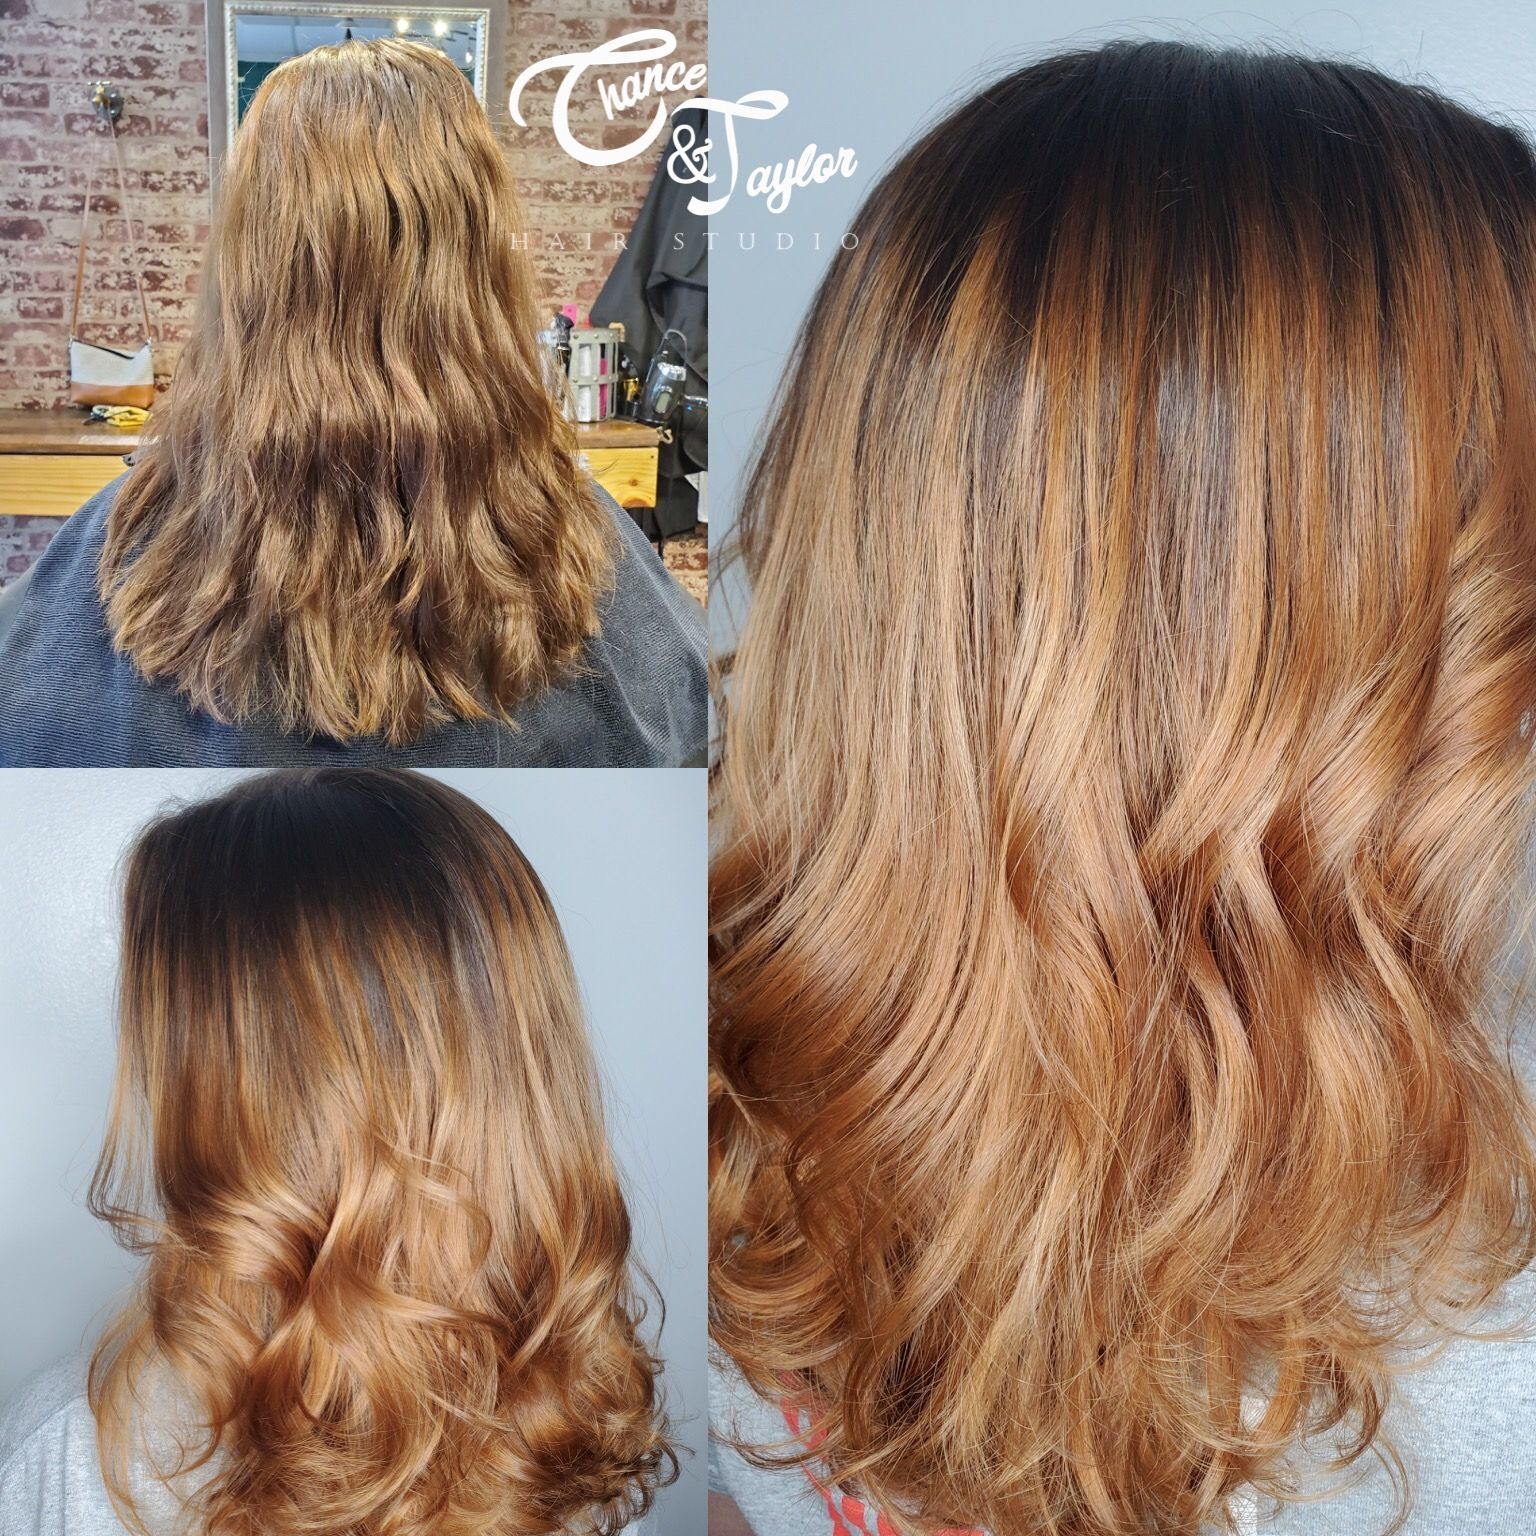 Pin By Stossy On Snips Hair Styles Long Hair Styles Beauty